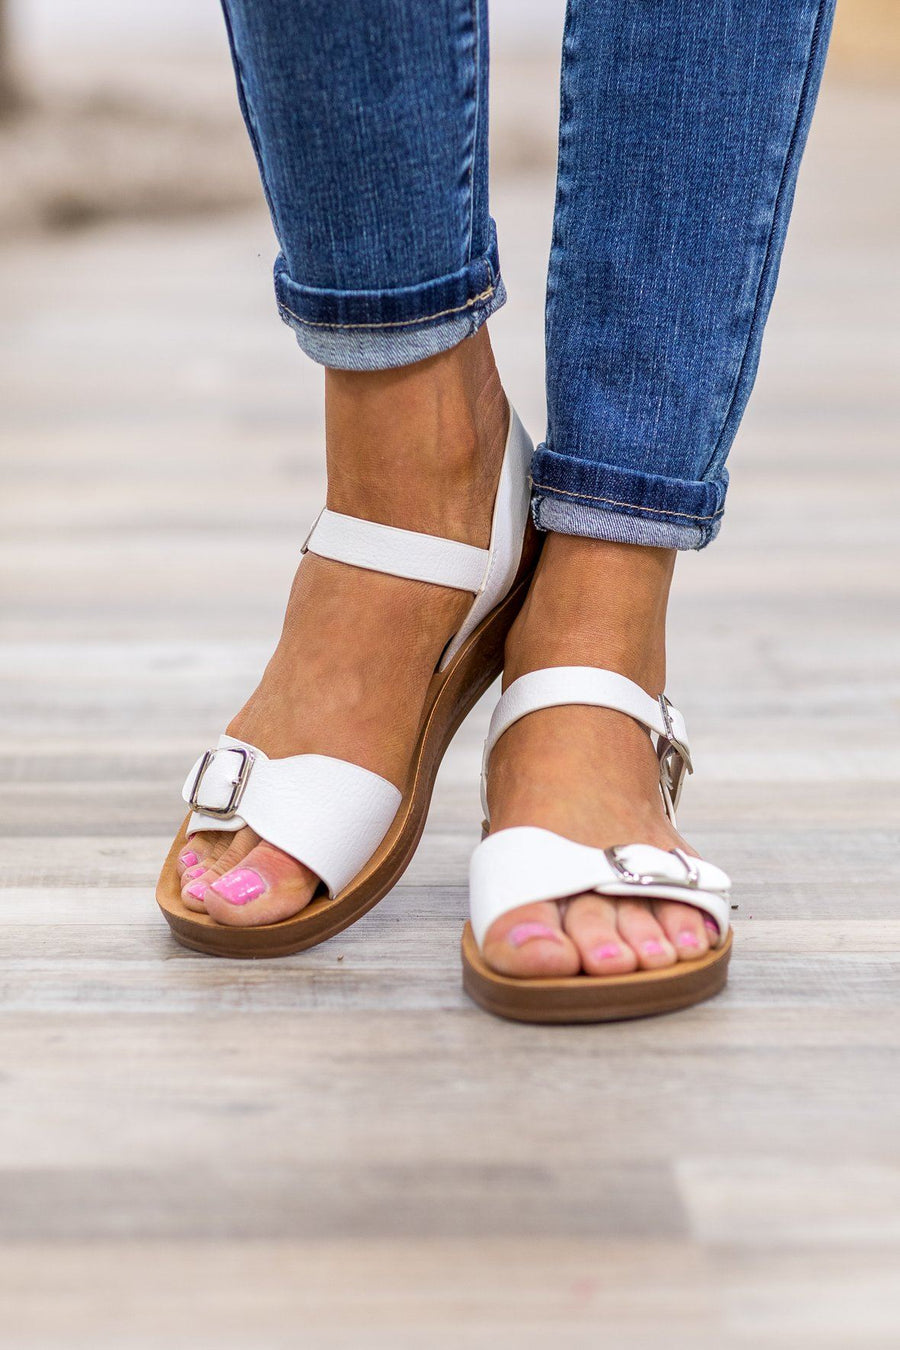 ac2898a15 She Will Be Here Buckle Sandals in White